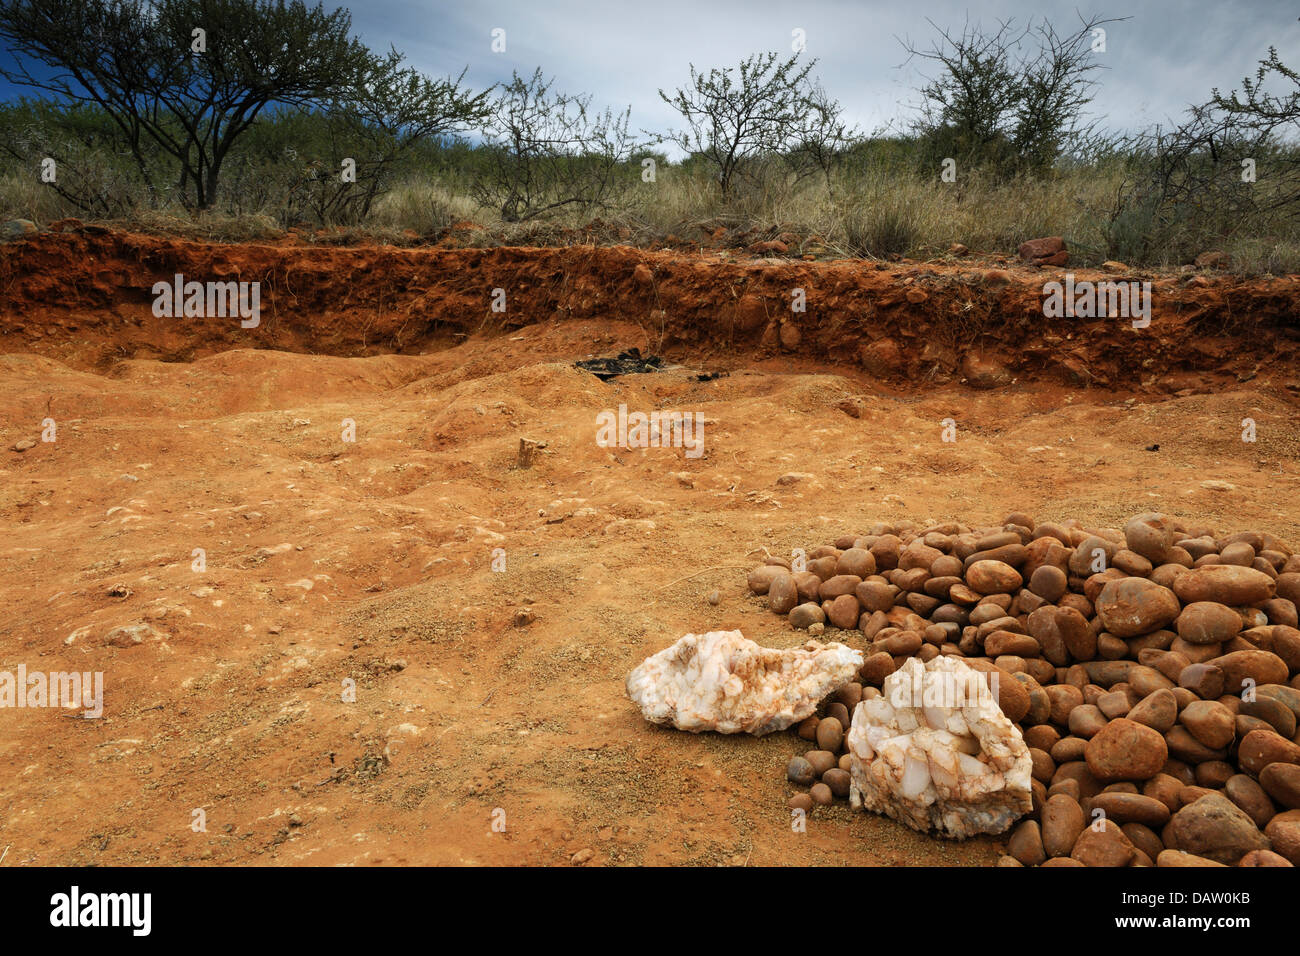 Small diamond mining operation with the excavation of rooikoppie ground near Barkly West, South Africa - Stock Image